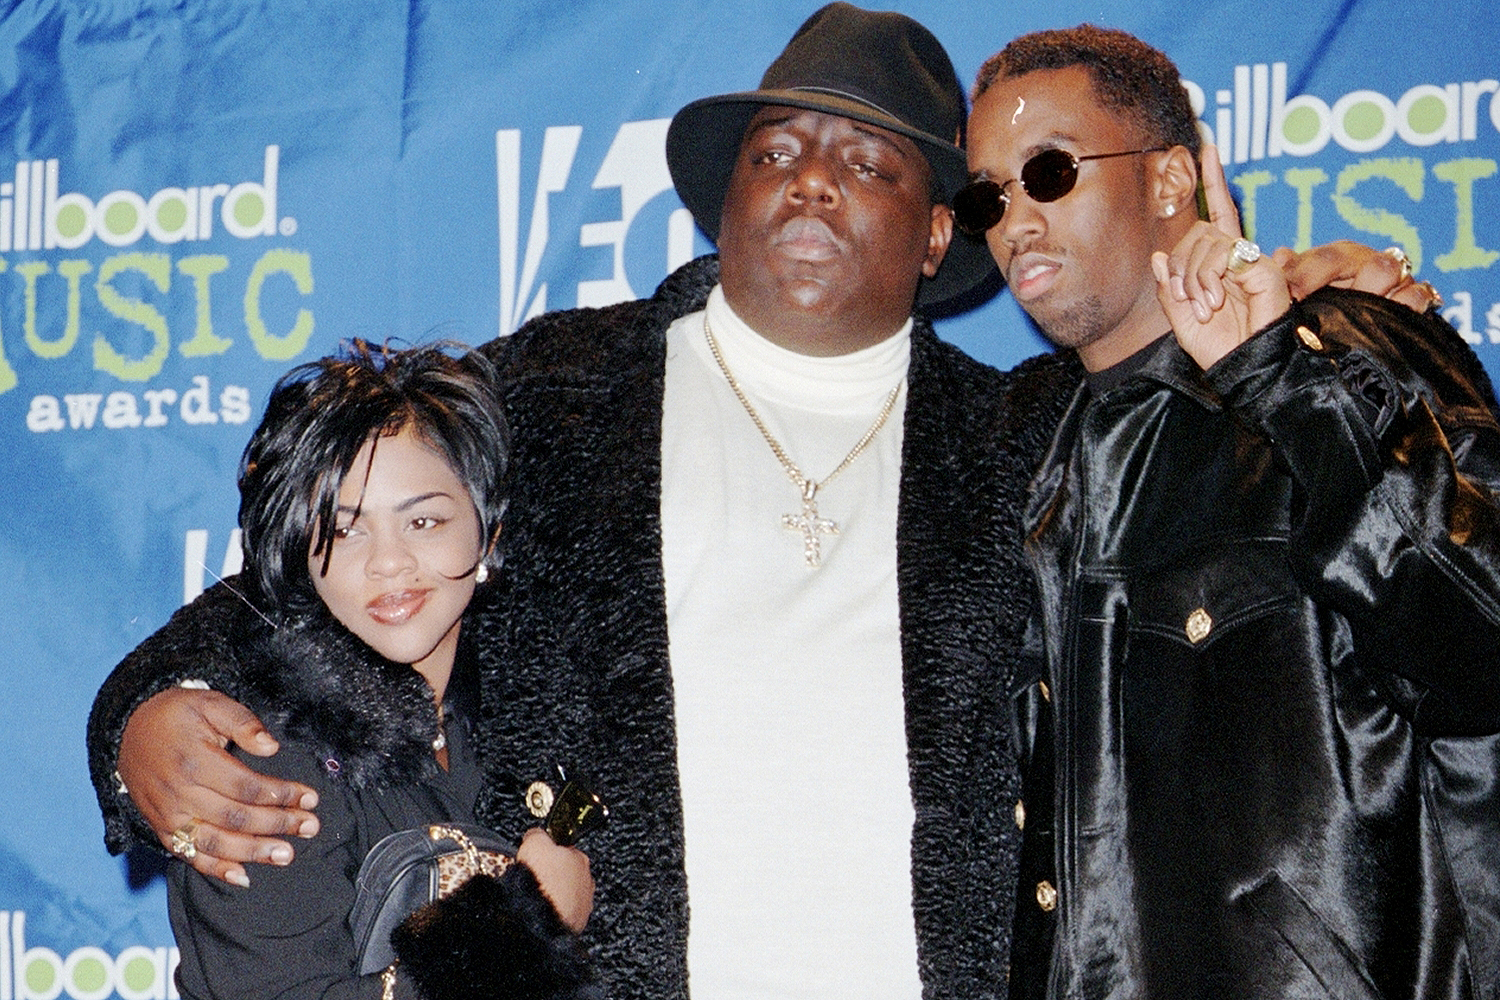 Lil Kim, the Notorious B.I.G., Sean Puffy Combs